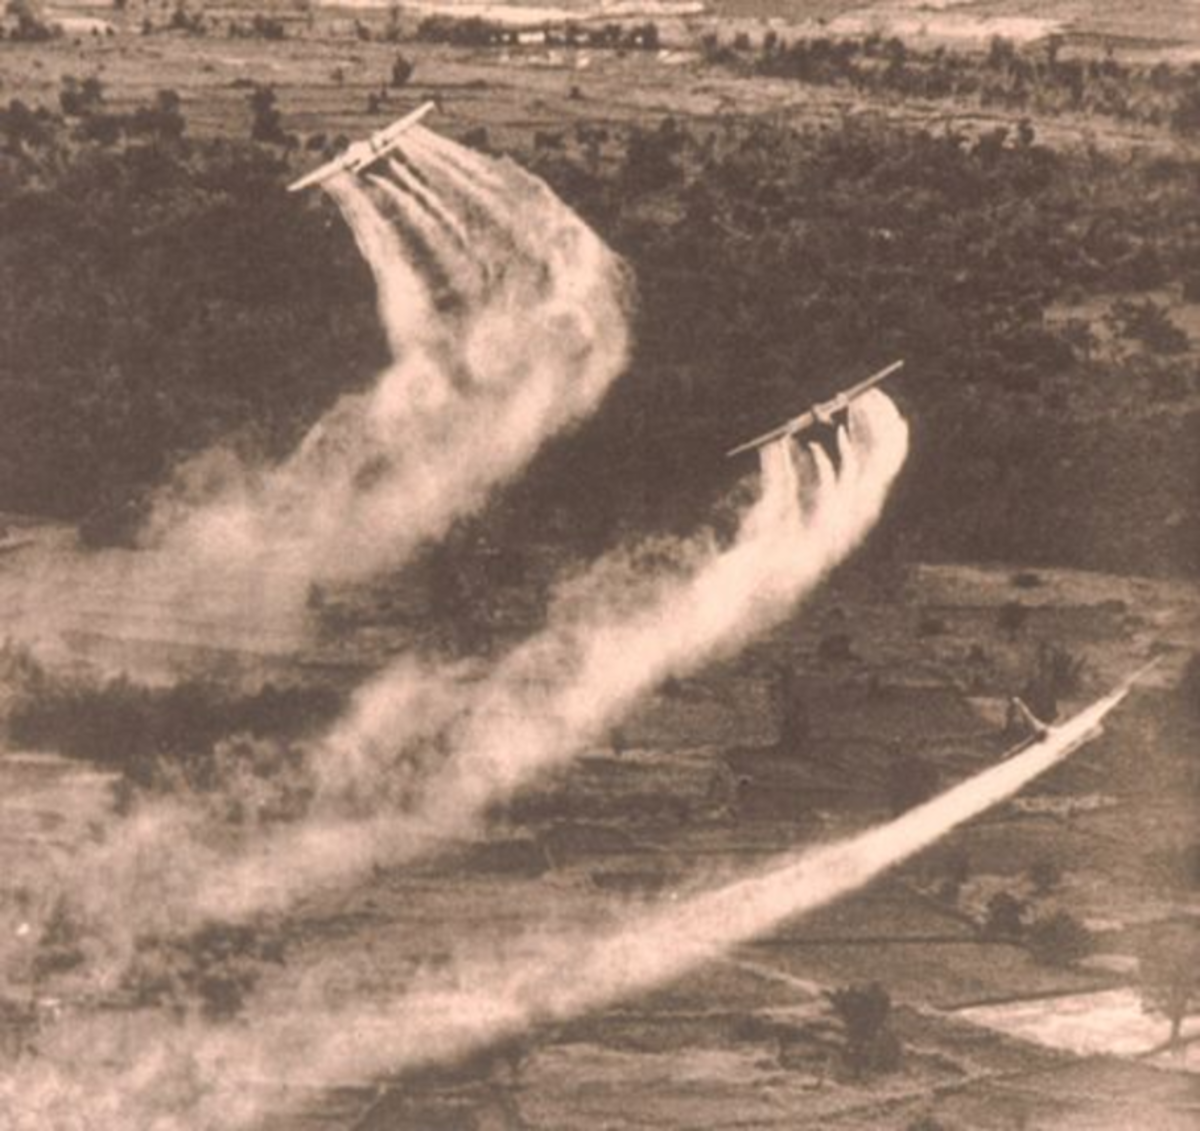 Spraying Agent Orange in Vietnam